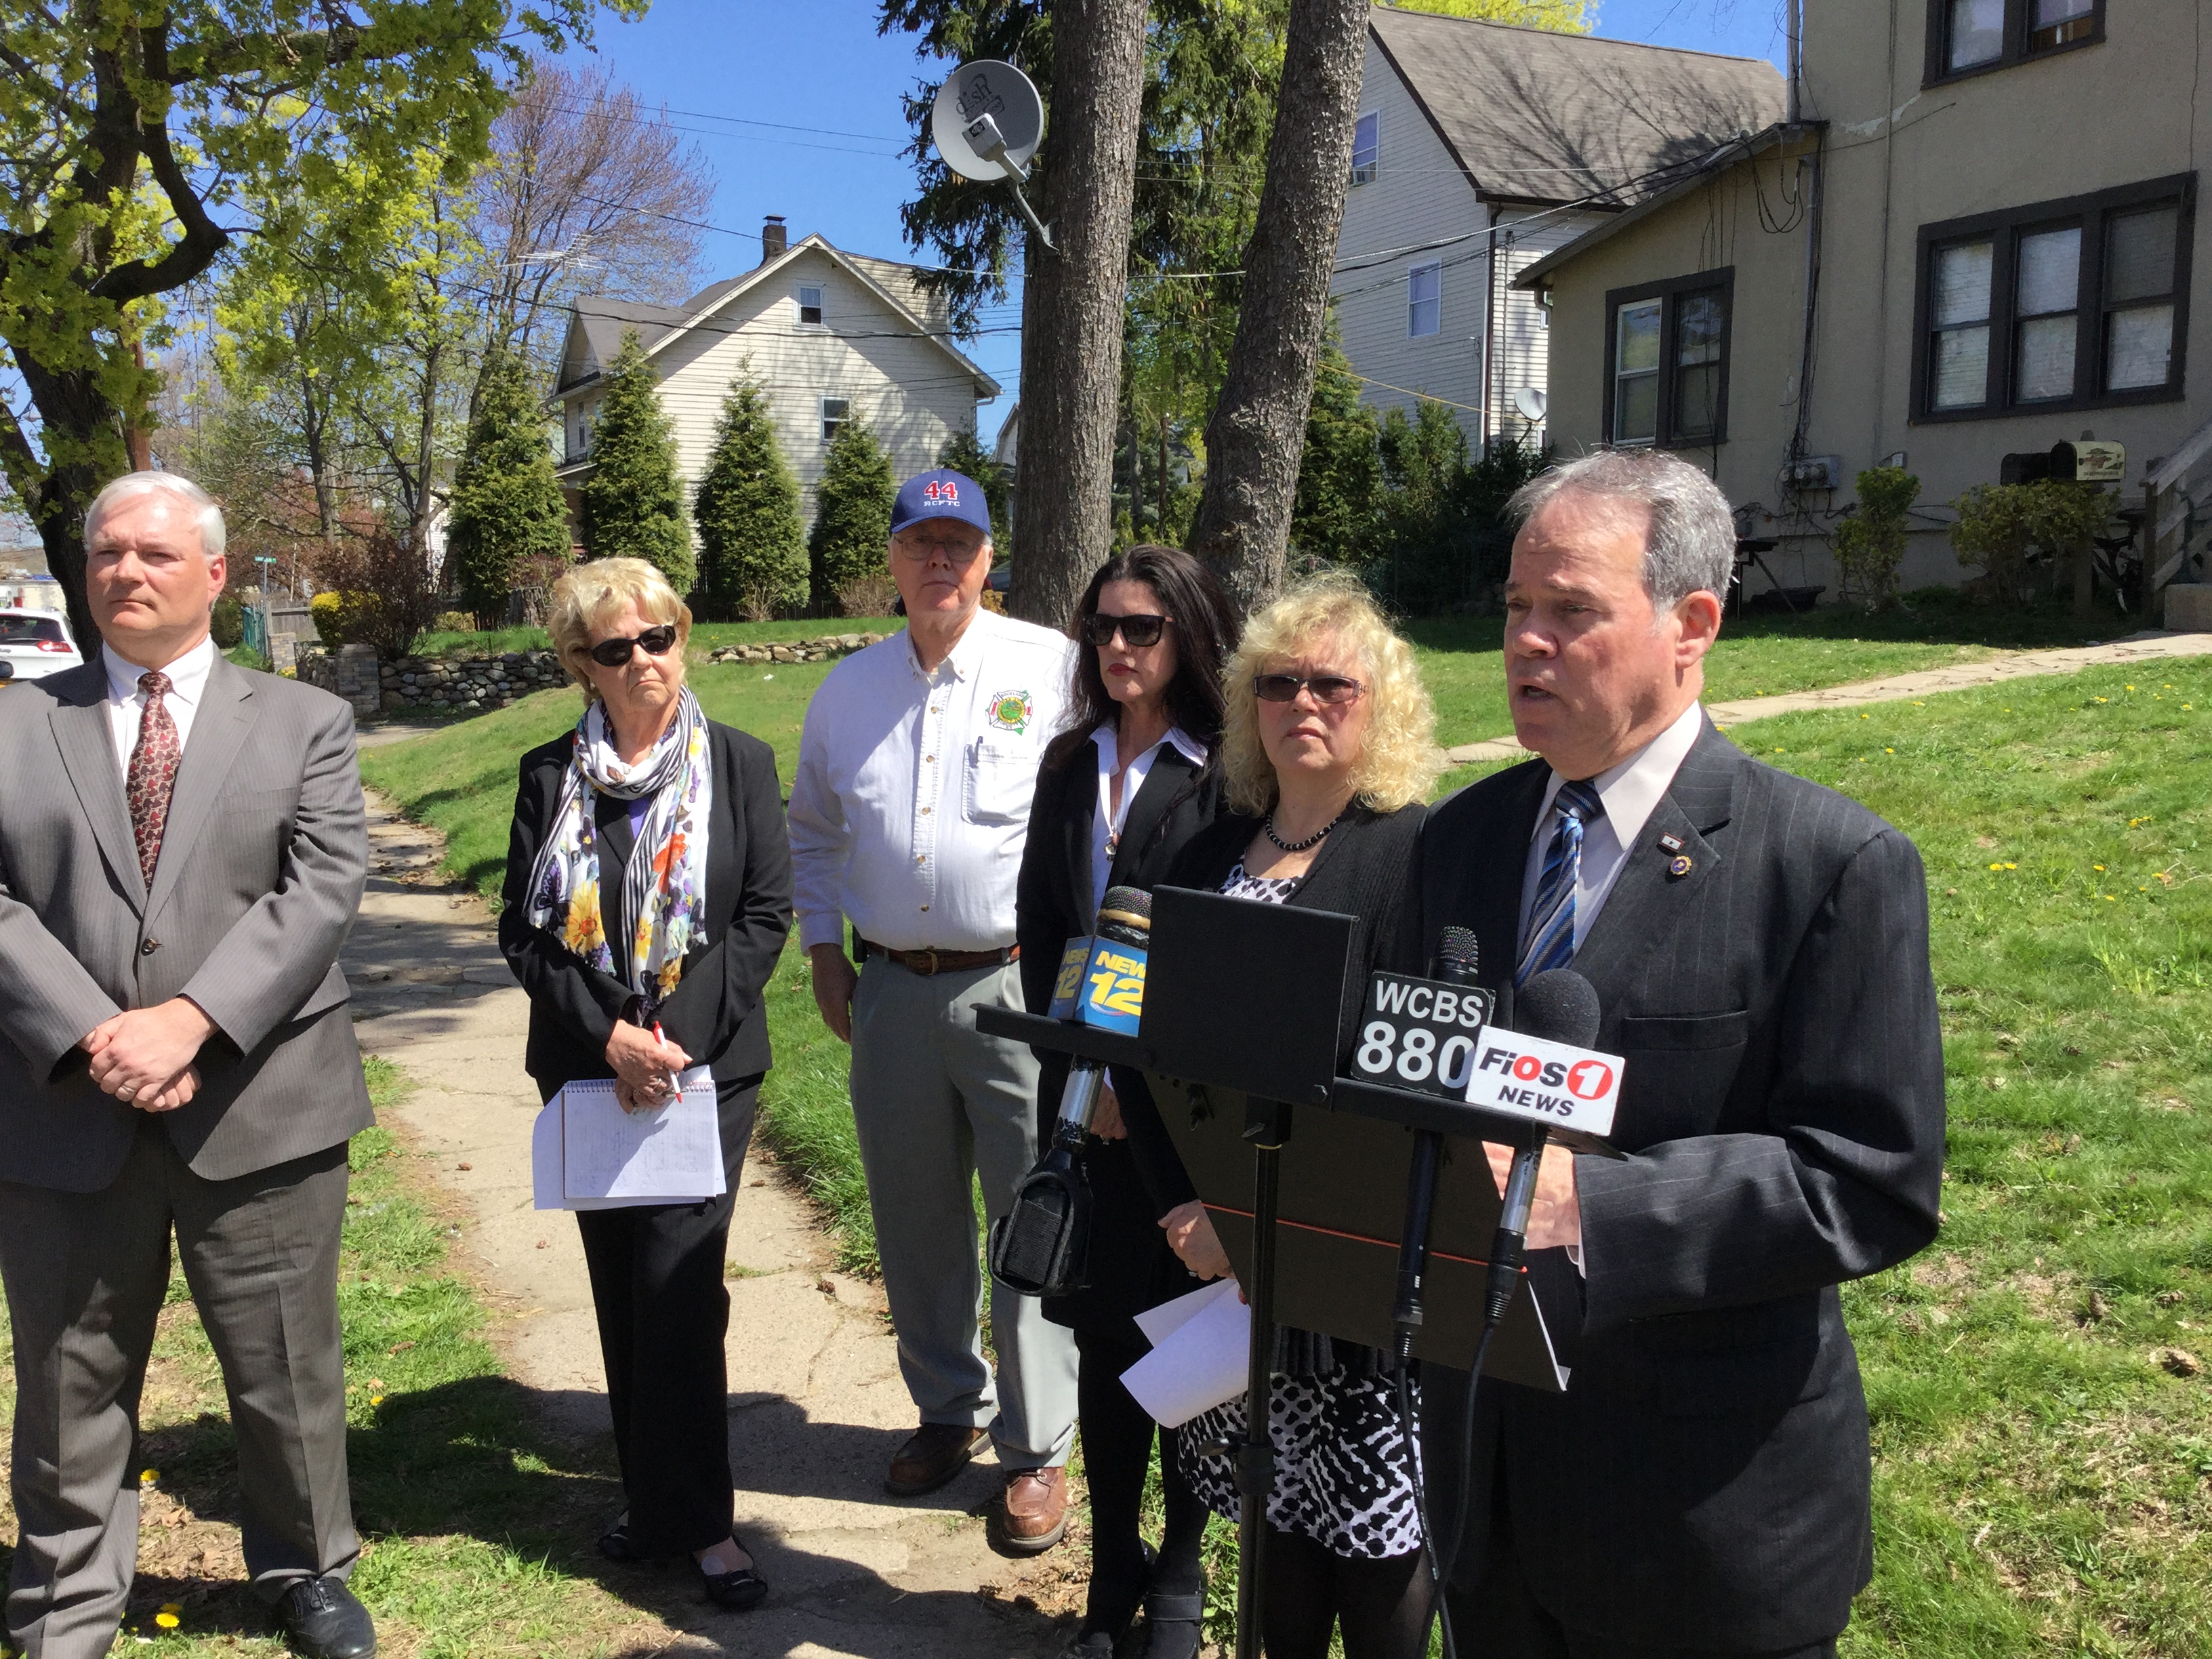 County Executive Day Launches The Rockland Codes Initiative